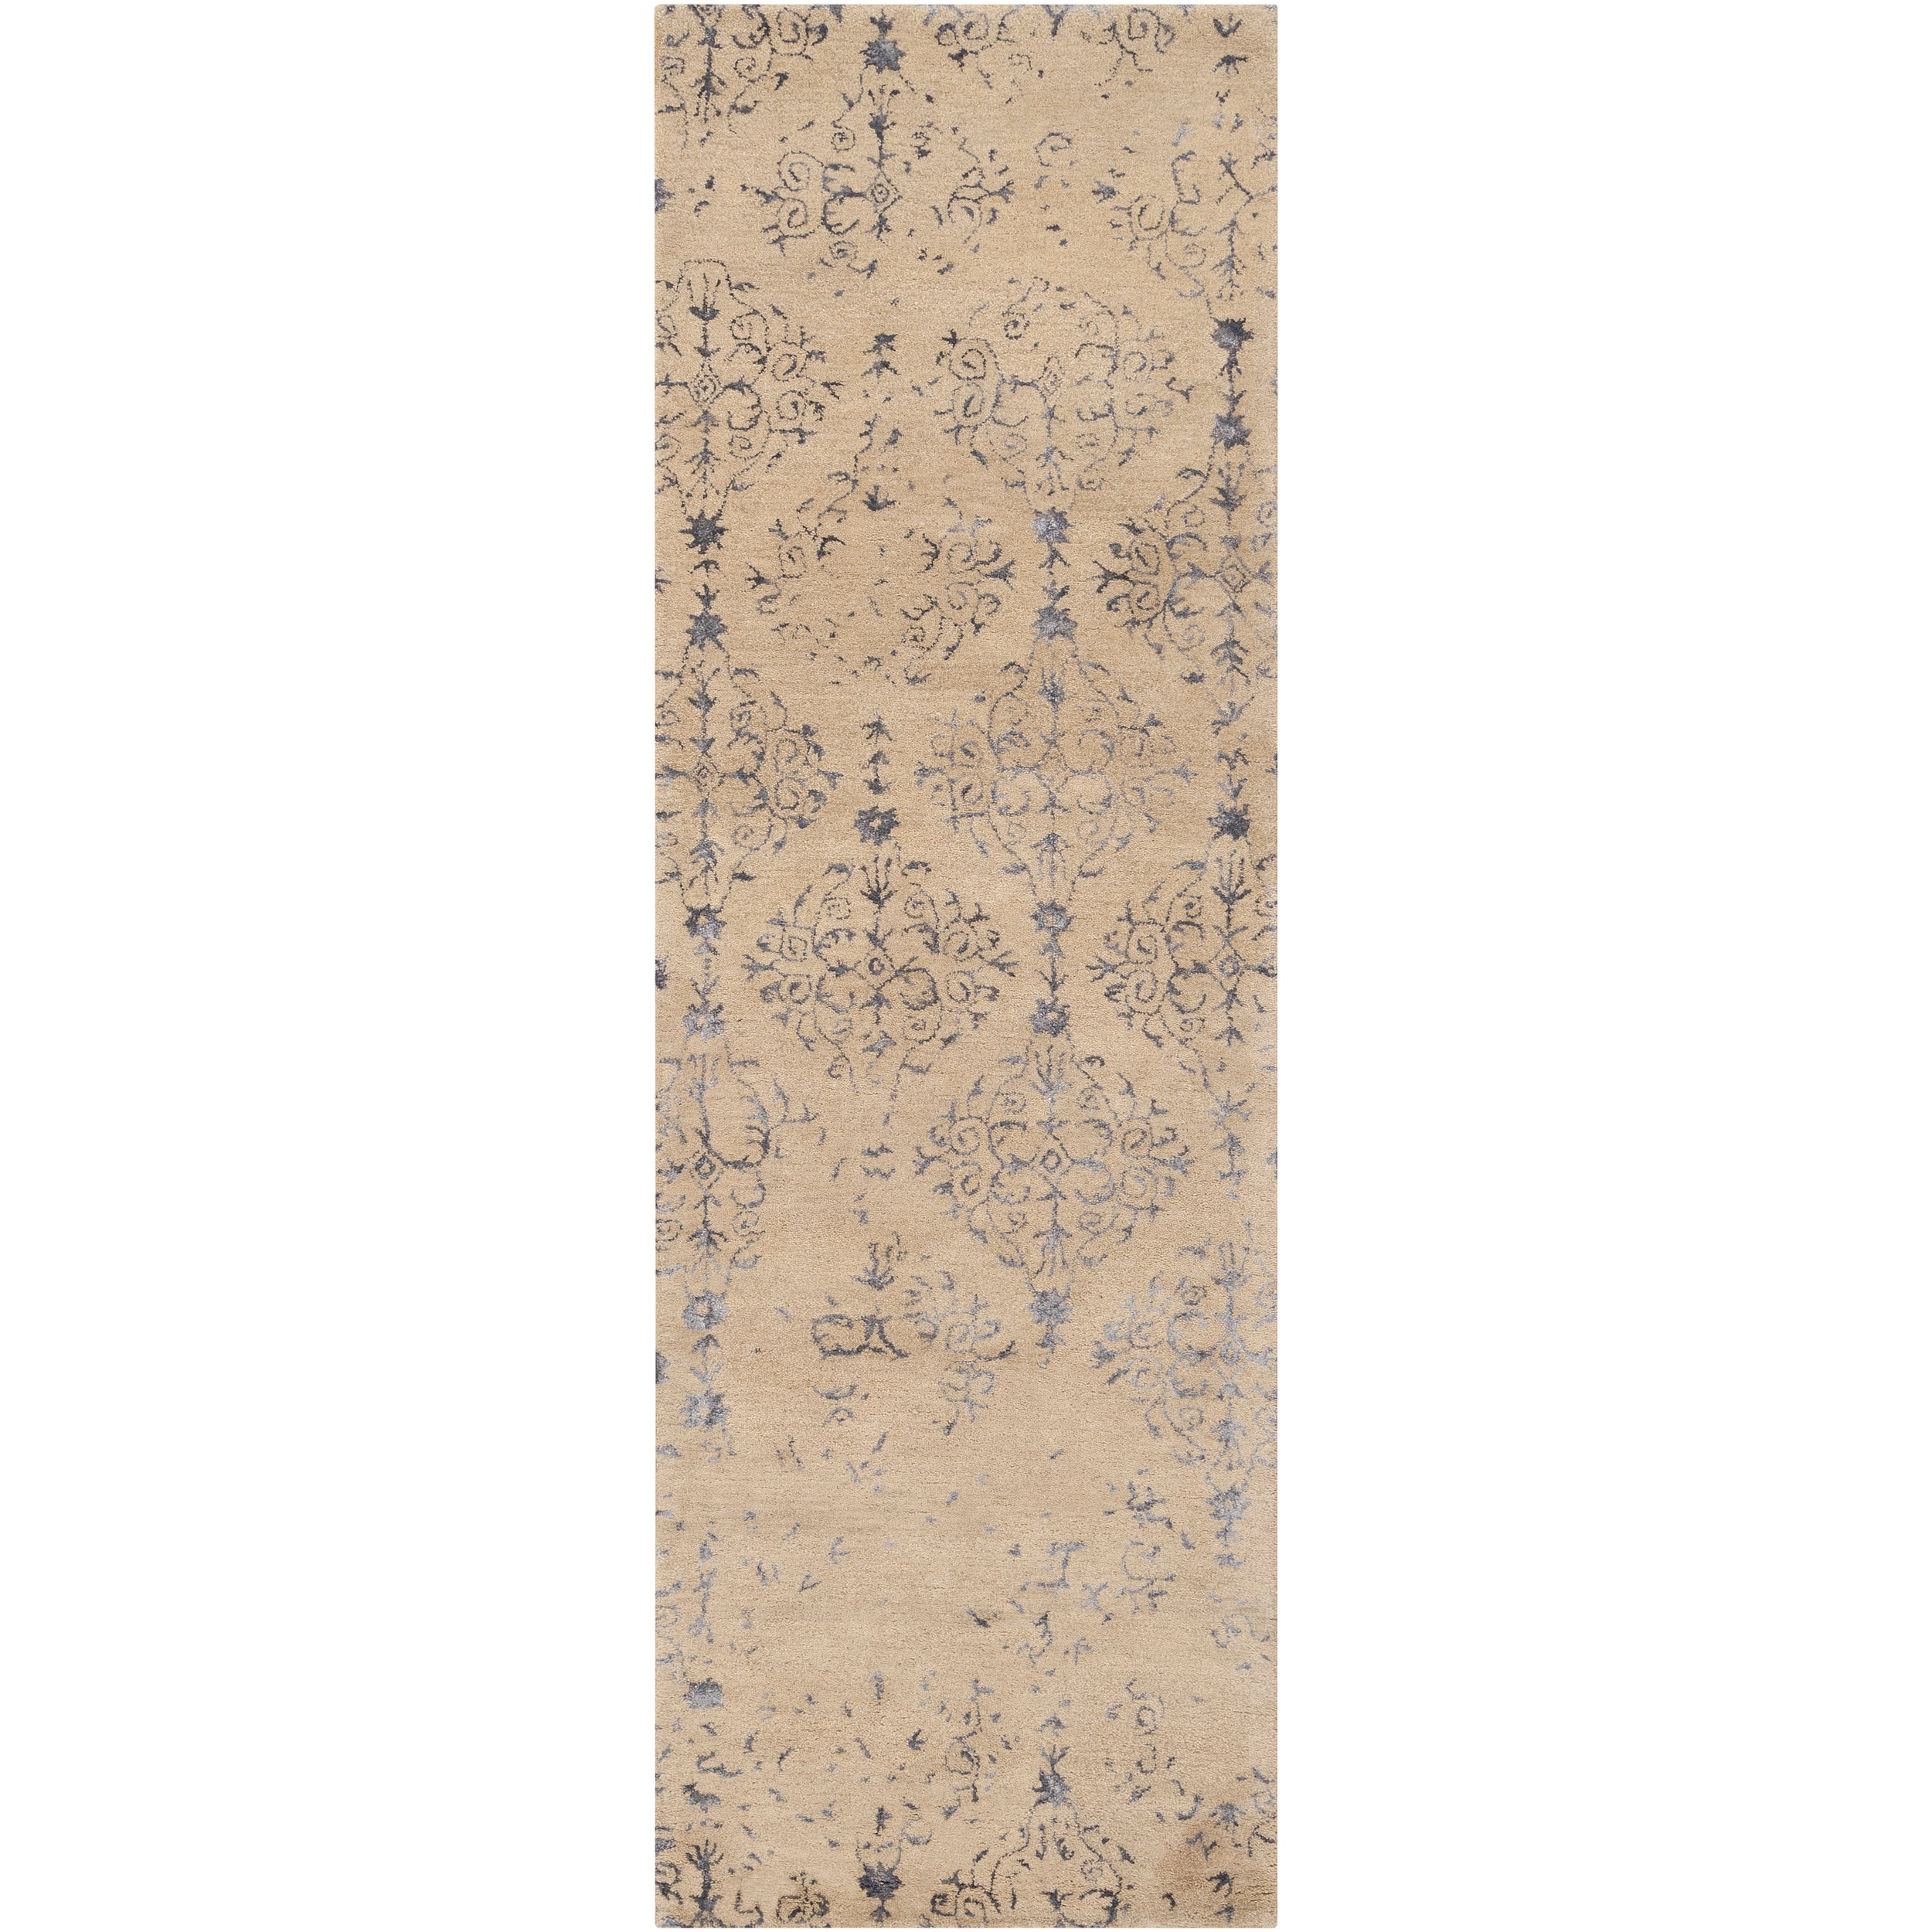 Hand-tufted Contemporary Navy Blue Accented Branded New Zealand Wool Abstract Rug (2'6 x 8')